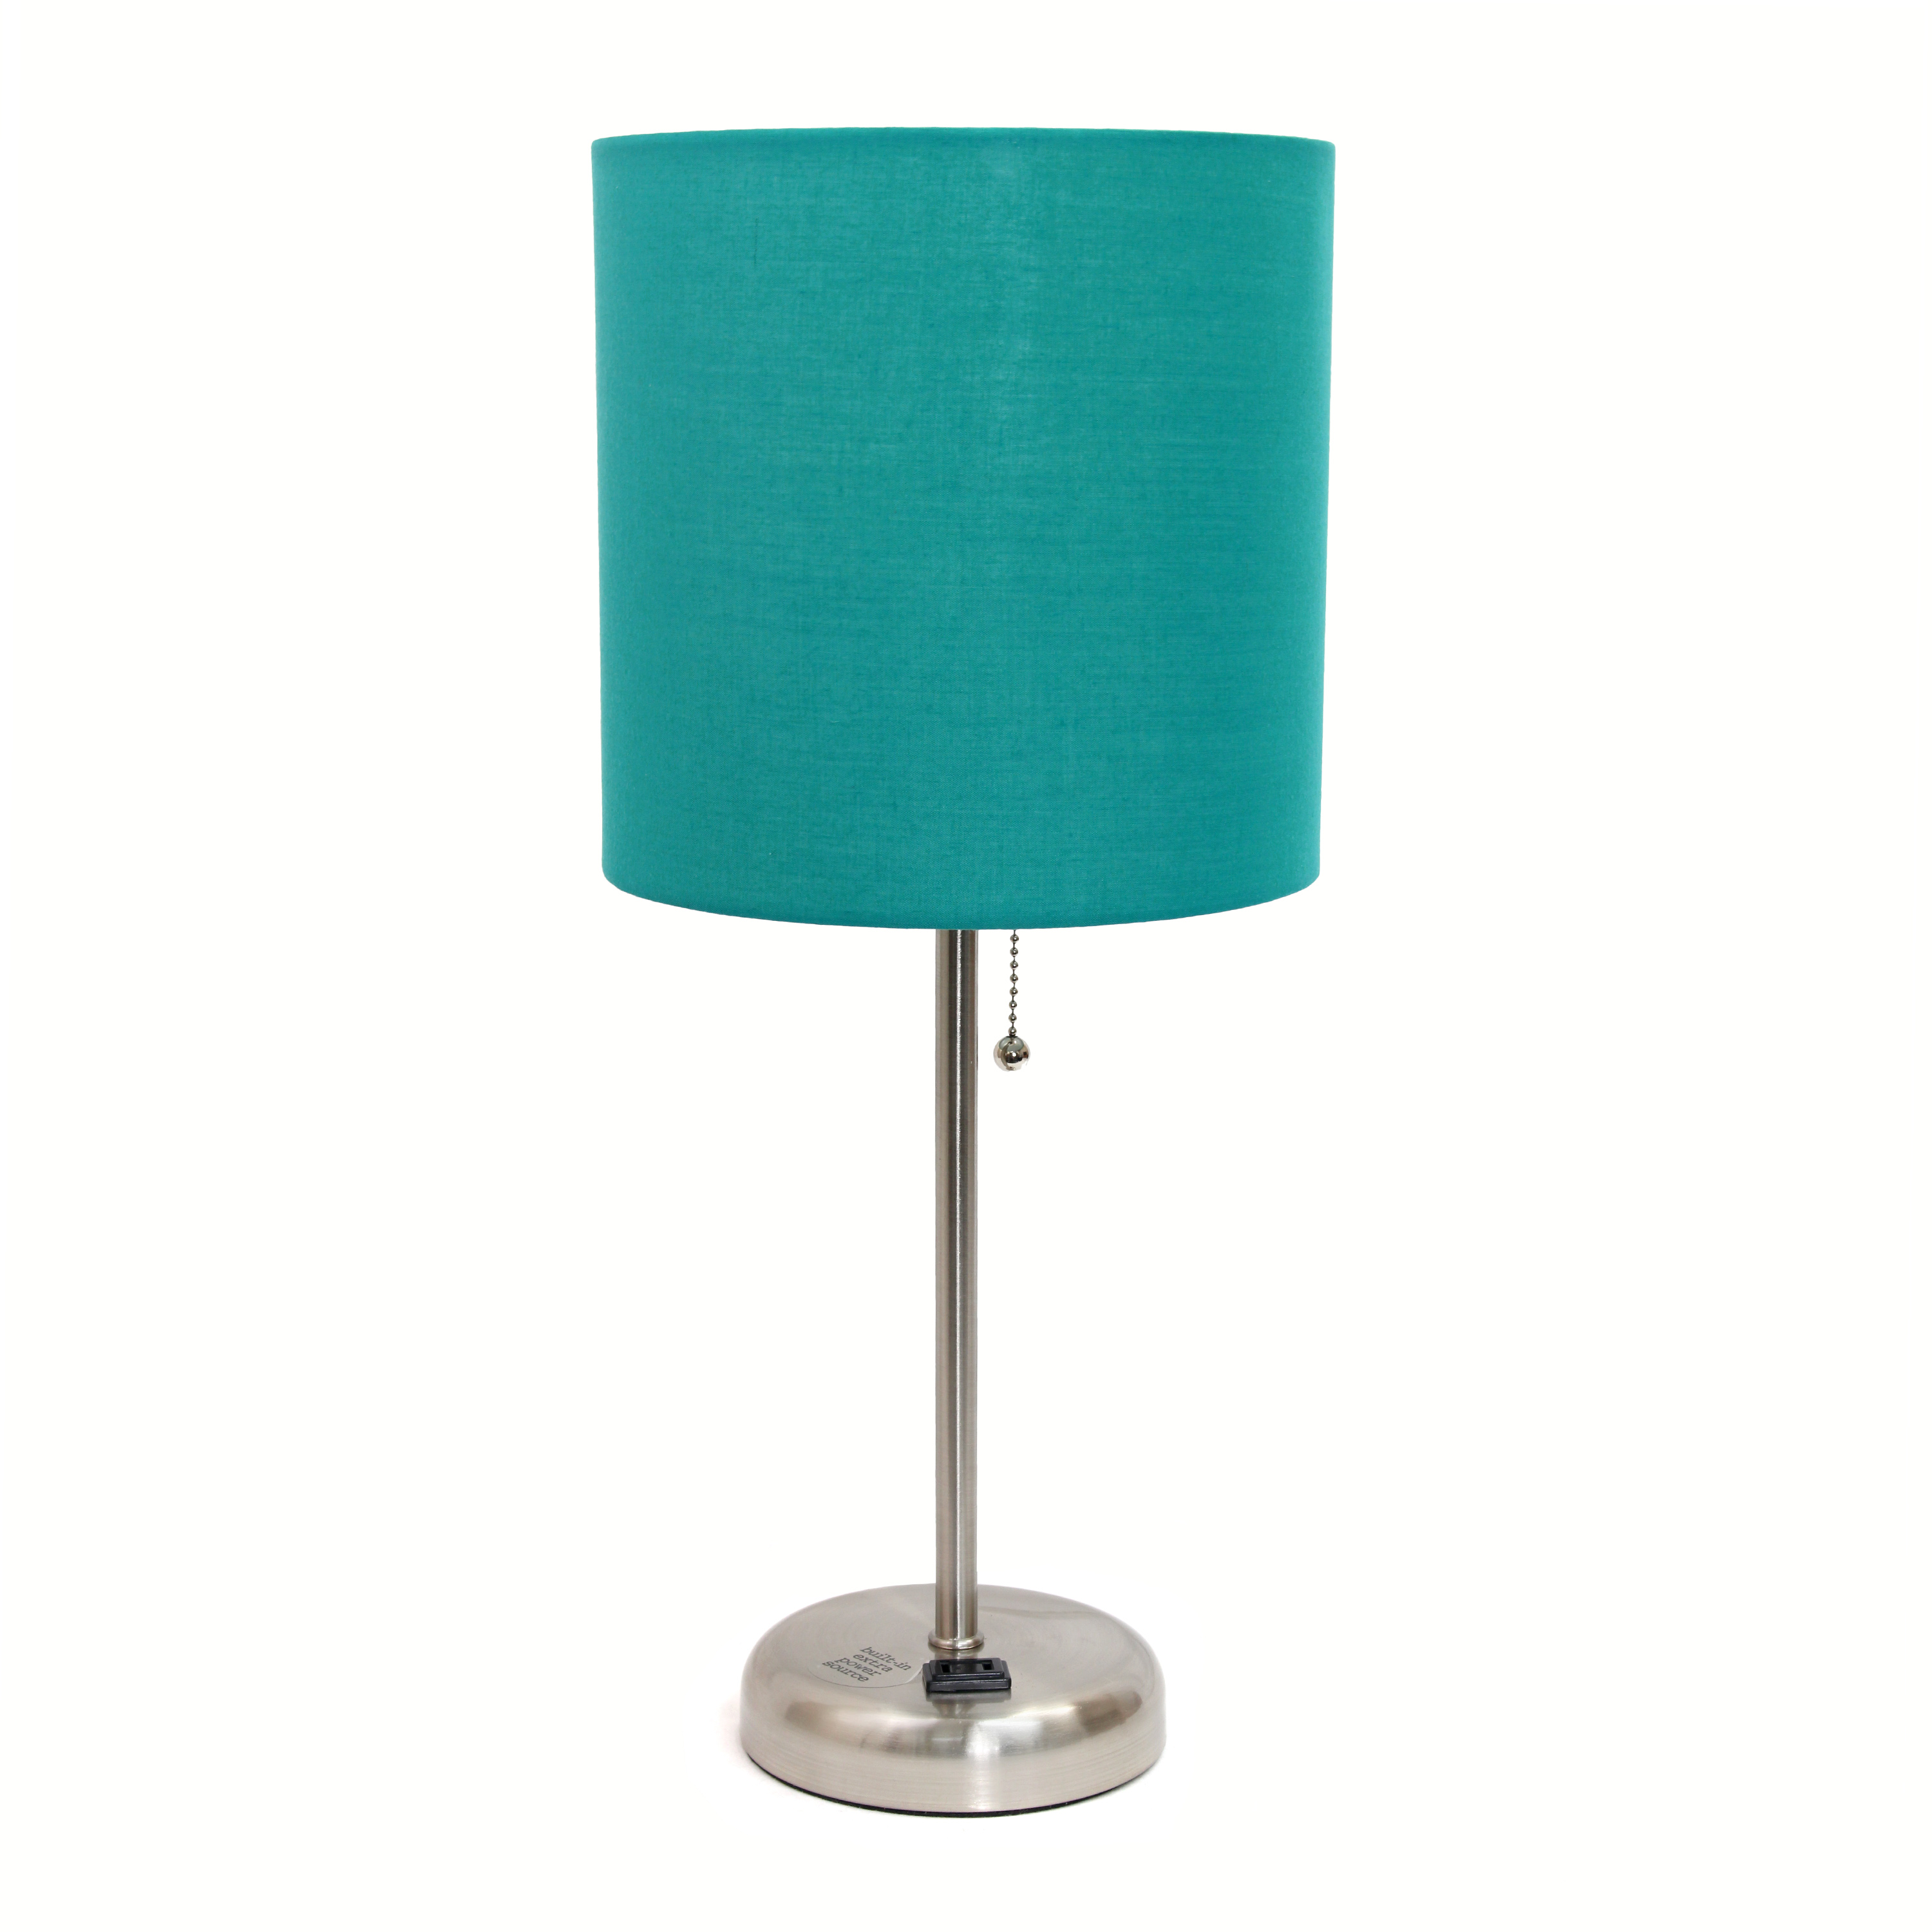 Alltherages LT2024-TEL Lime Lights Stick Lamp with Outlet, Teal Fabric Shade